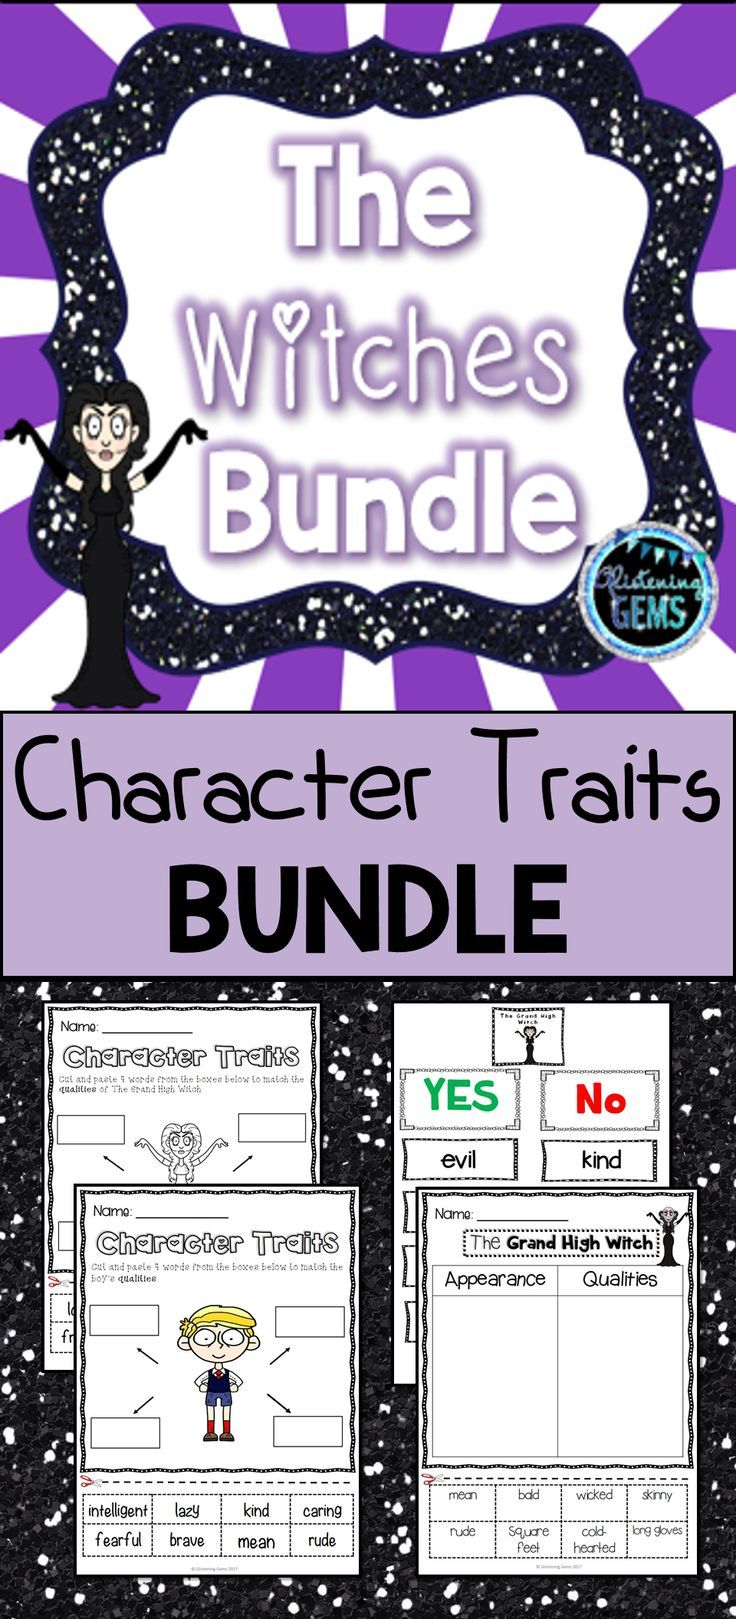 Workbooks the witches roald dahl worksheets : The Witches by Roald Dahl - Bundle | Roald dahl characters ...